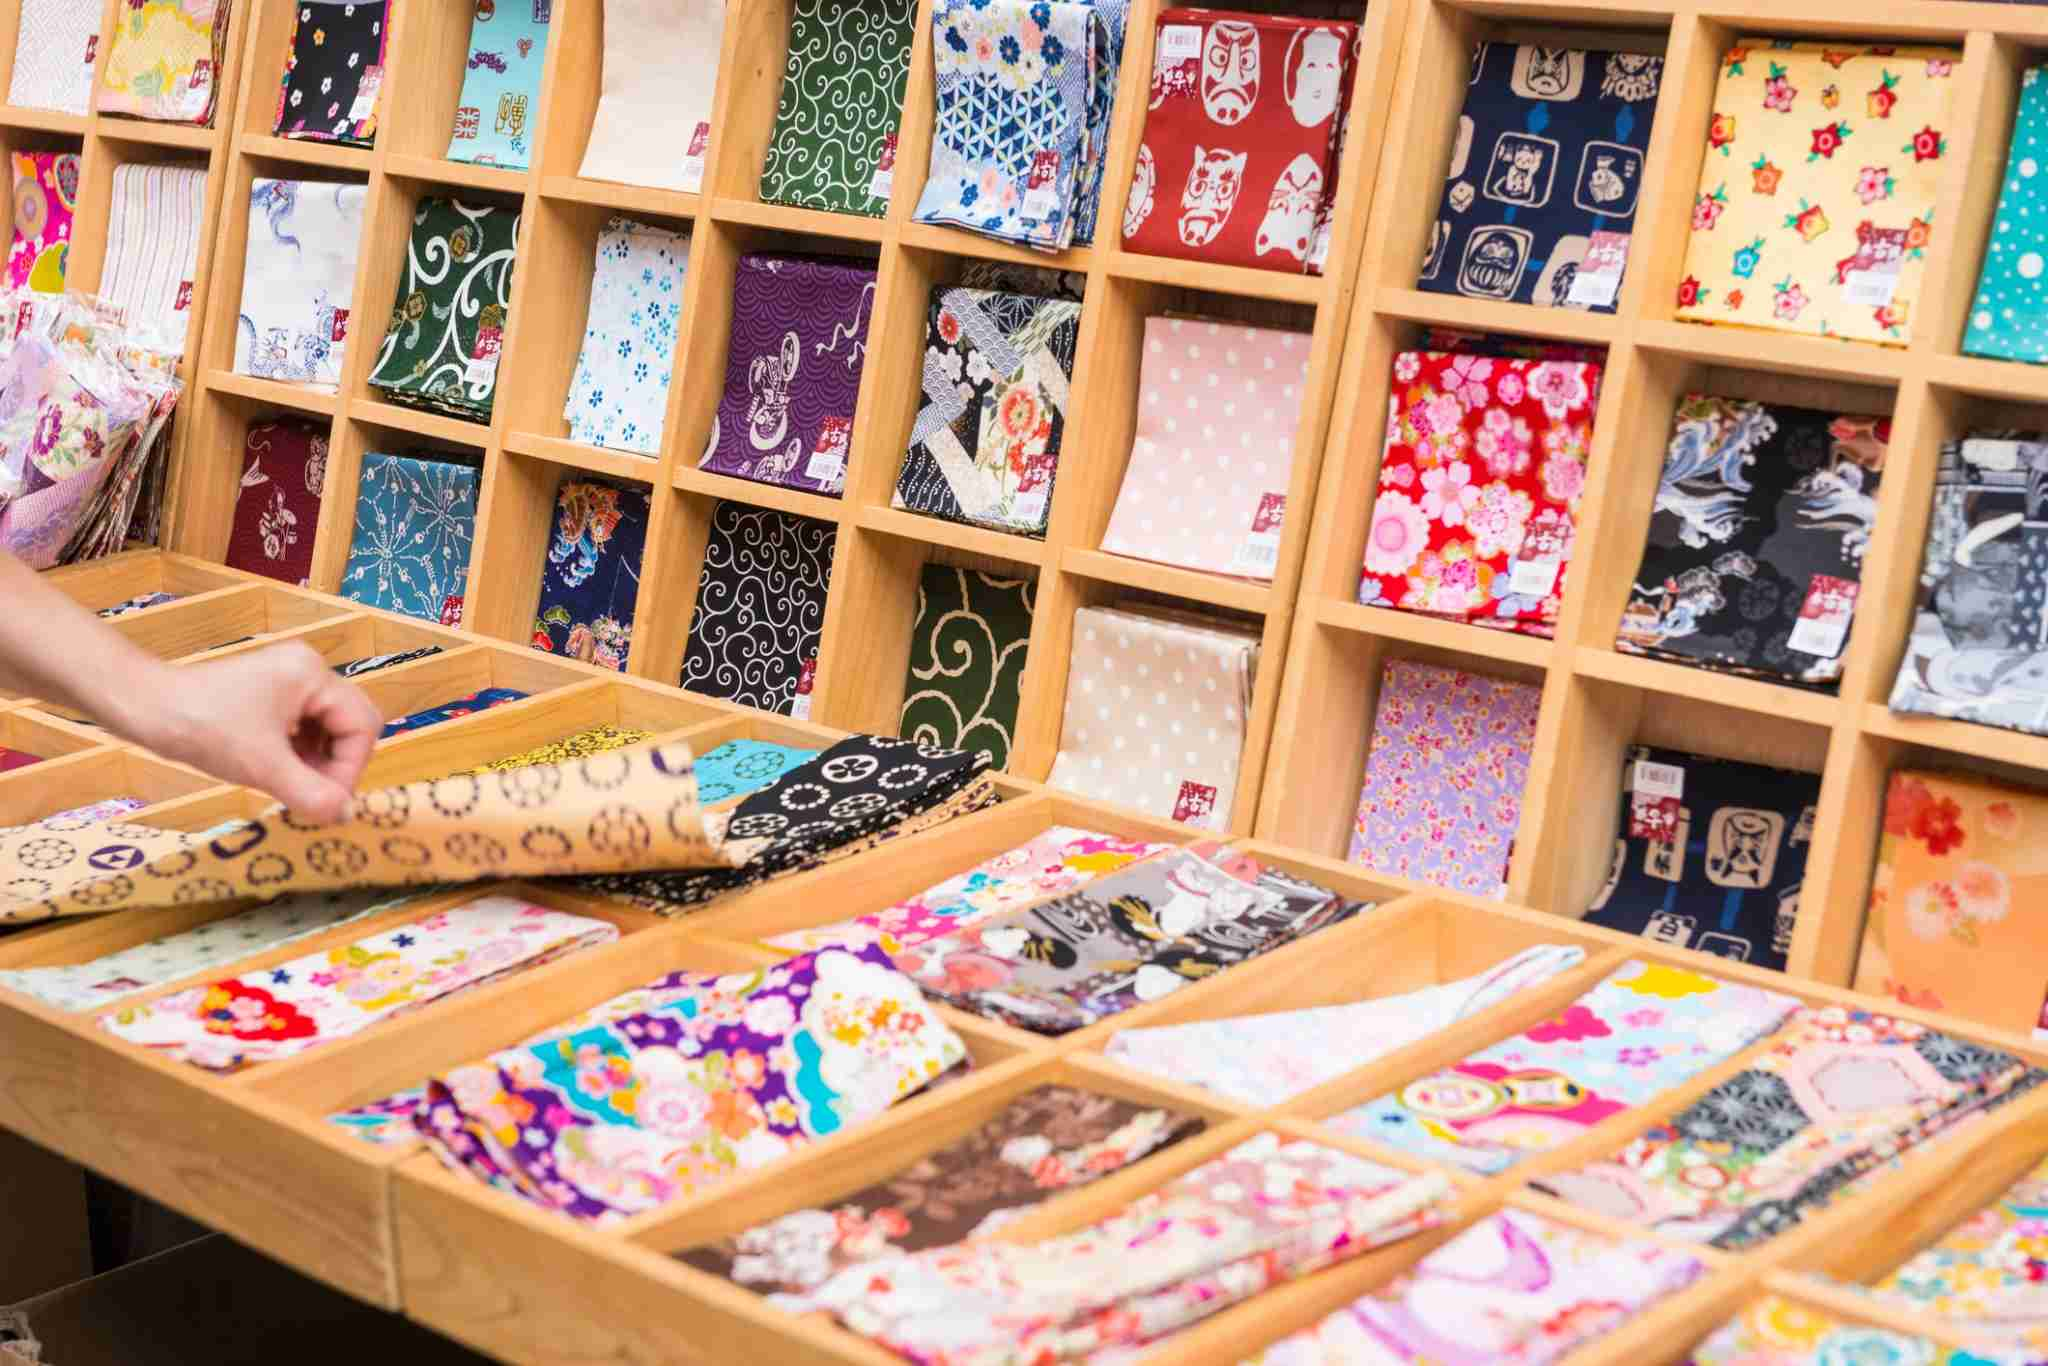 Fabric is an art form in Japan, as is evidenced by the attention paid to making and buying <em>tenugui</em>, an all-purpose printed towel or cloth square. Image courtesy of helovi via Getty Images.